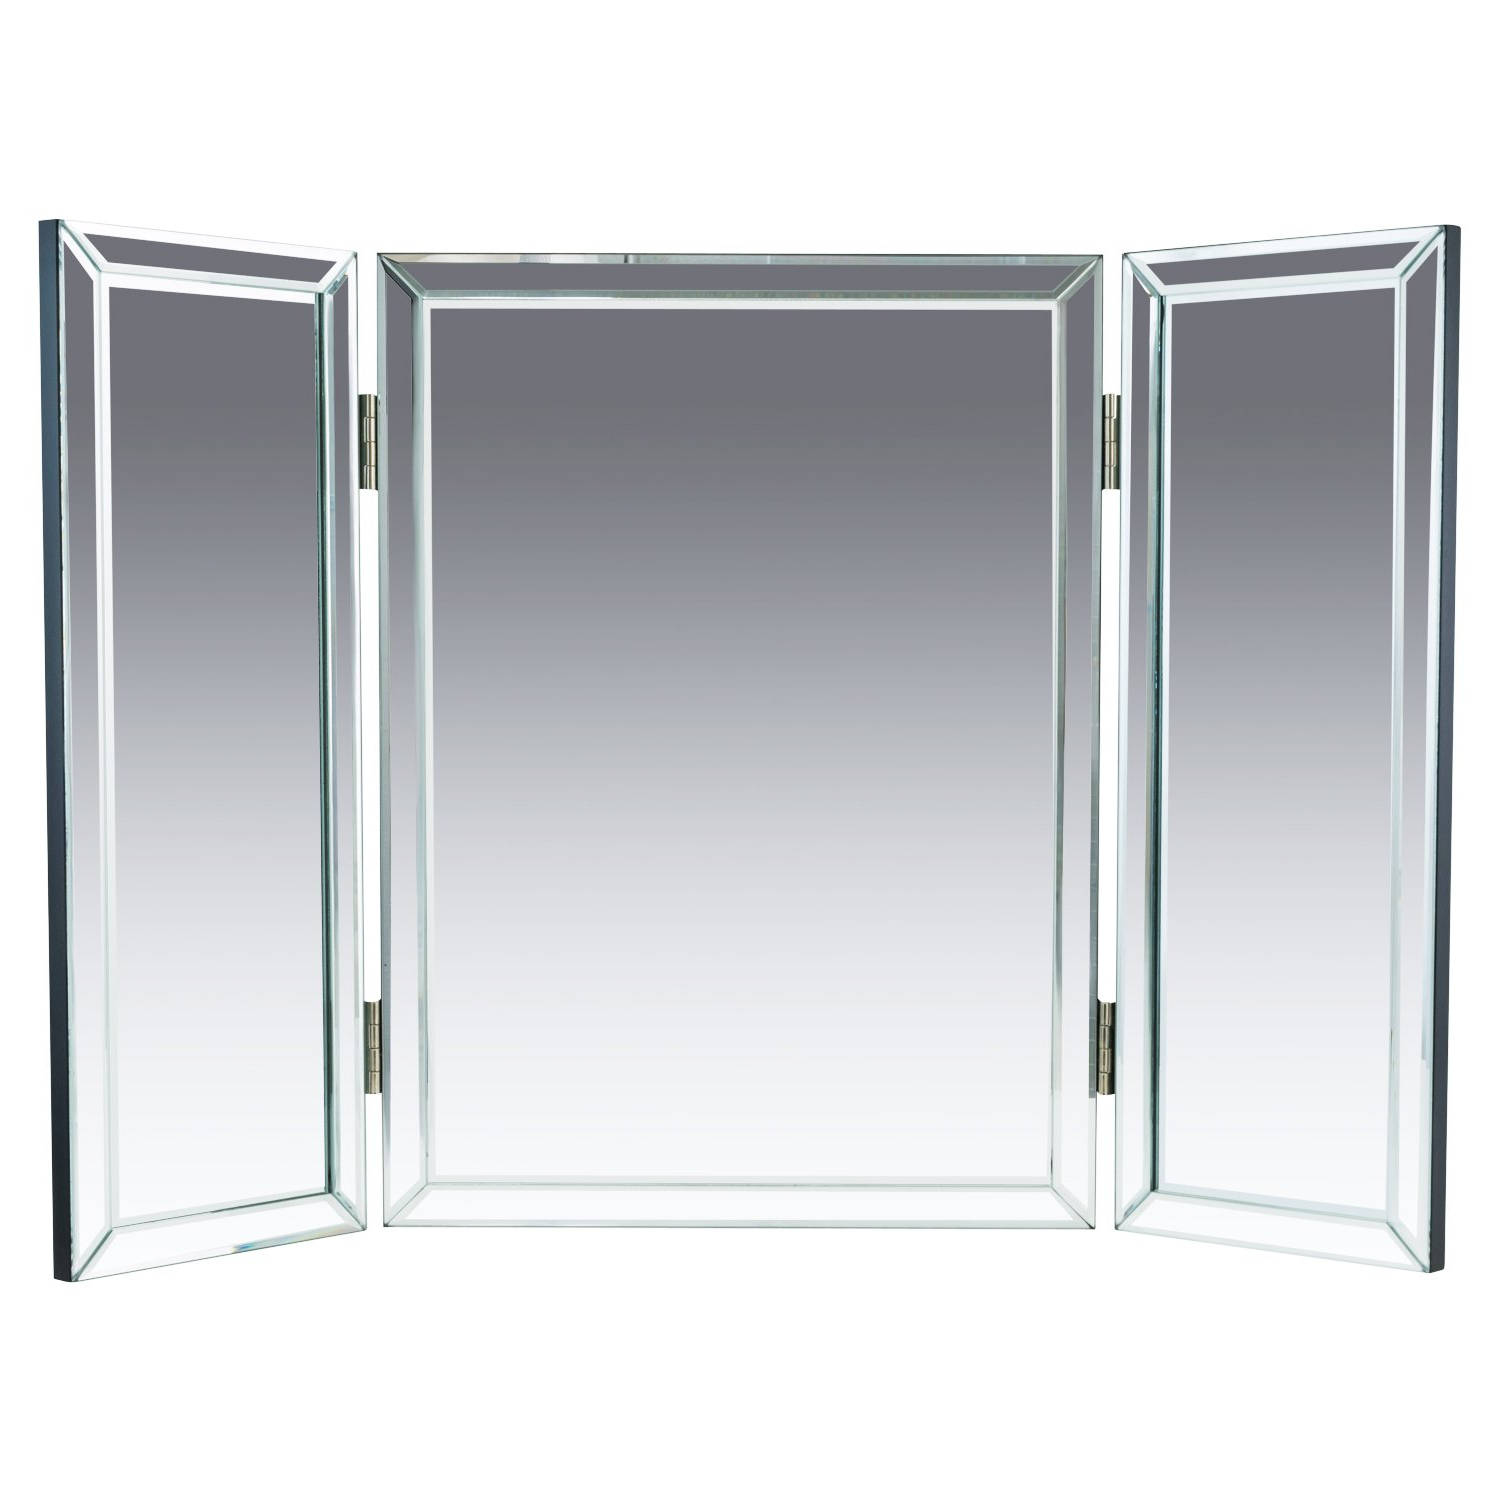 """Well Liked Houseables Trifold Vanity Mirror, 3 Way, 31"""" X 1"""" X 21"""", Single, Tri Fold,  Big Mirrors For Tables, Bedrooms, Intended For Tri Fold Bathroom Wall Mirrors (View 20 of 20)"""